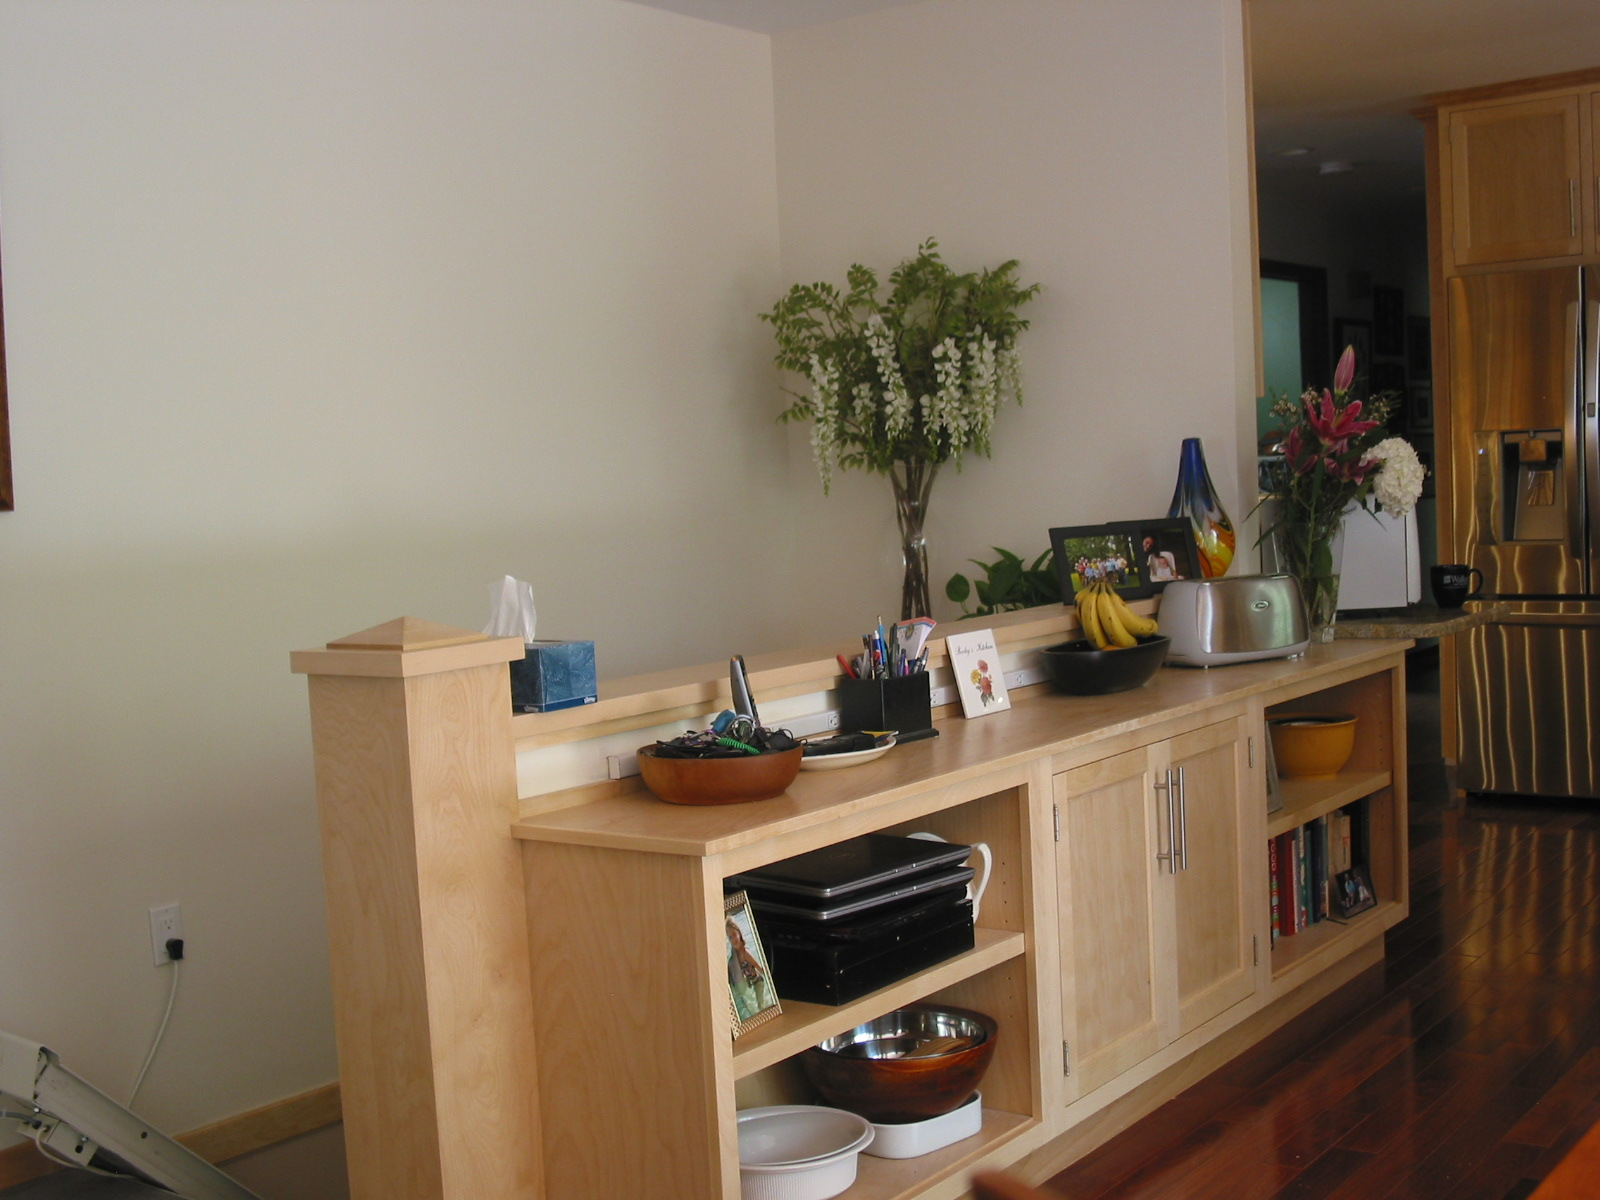 Banister and storage cabinet